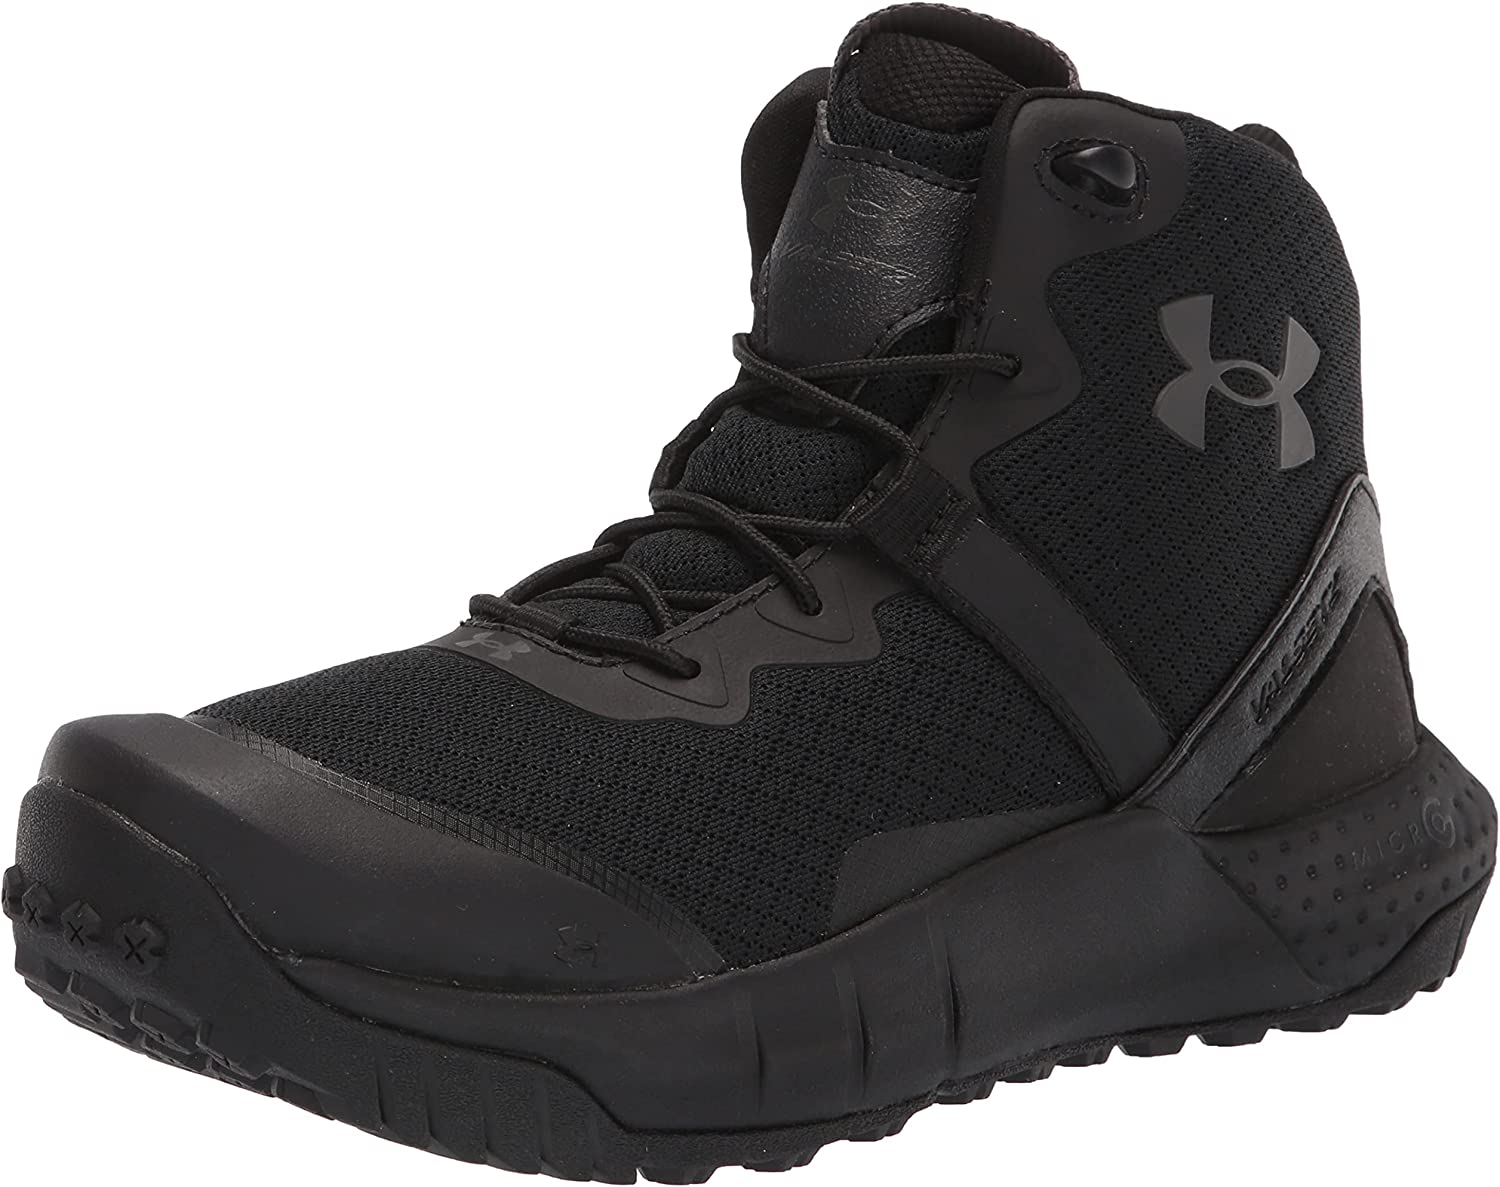 Under Armour Men's Micro G Valsetz Zip Cheap bargain Tactical Military Sale price Mid and